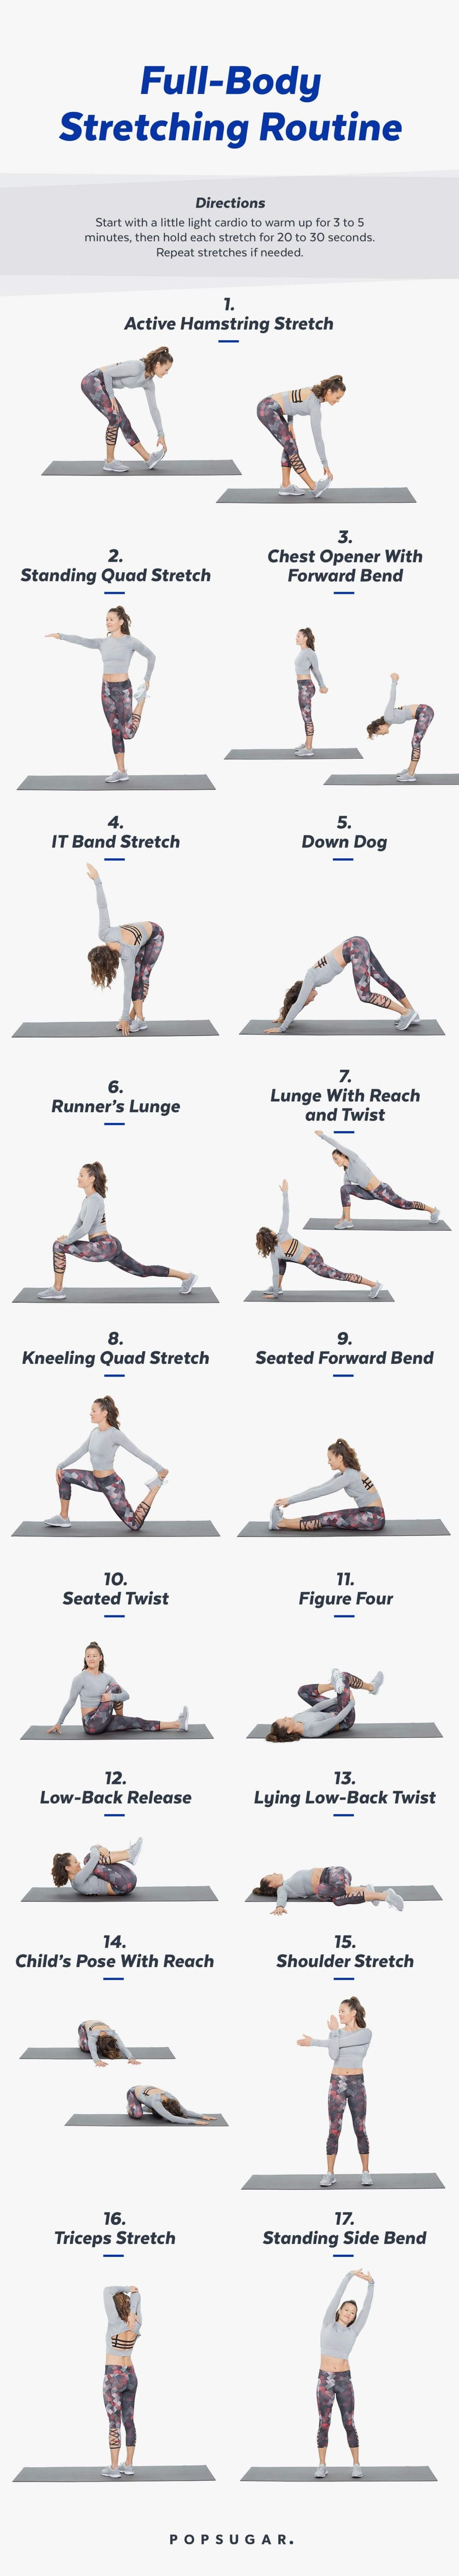 Stretch Recover Relax This Is How To Take Care Of Your Body